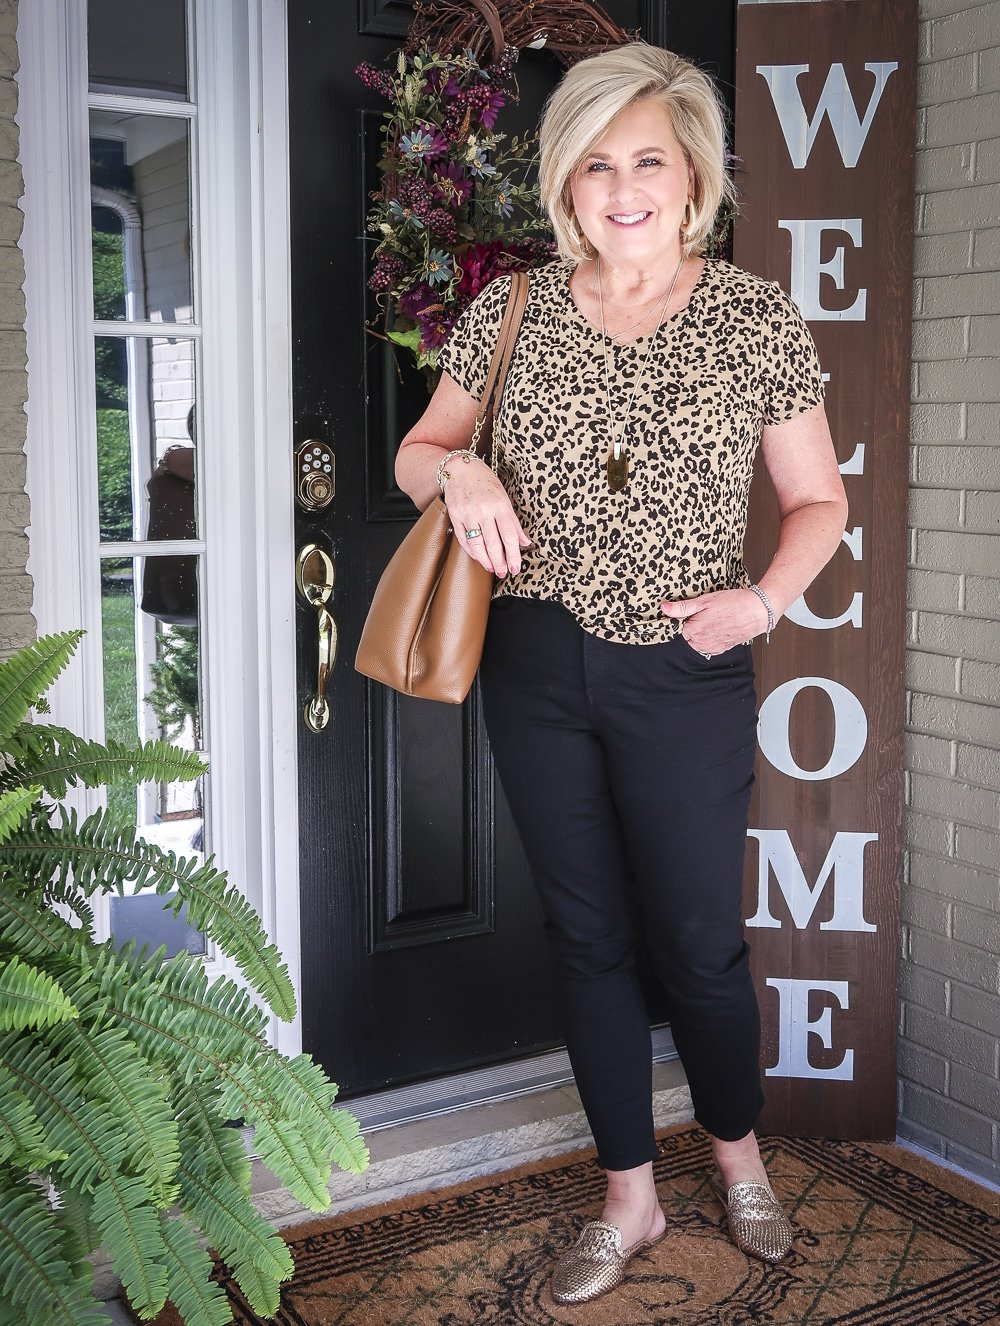 Fashion Blogger 50 Is Not Old is wearing a v-neck leopard tee, black girlfriend jeans, gold mules, and carrying a brown tote